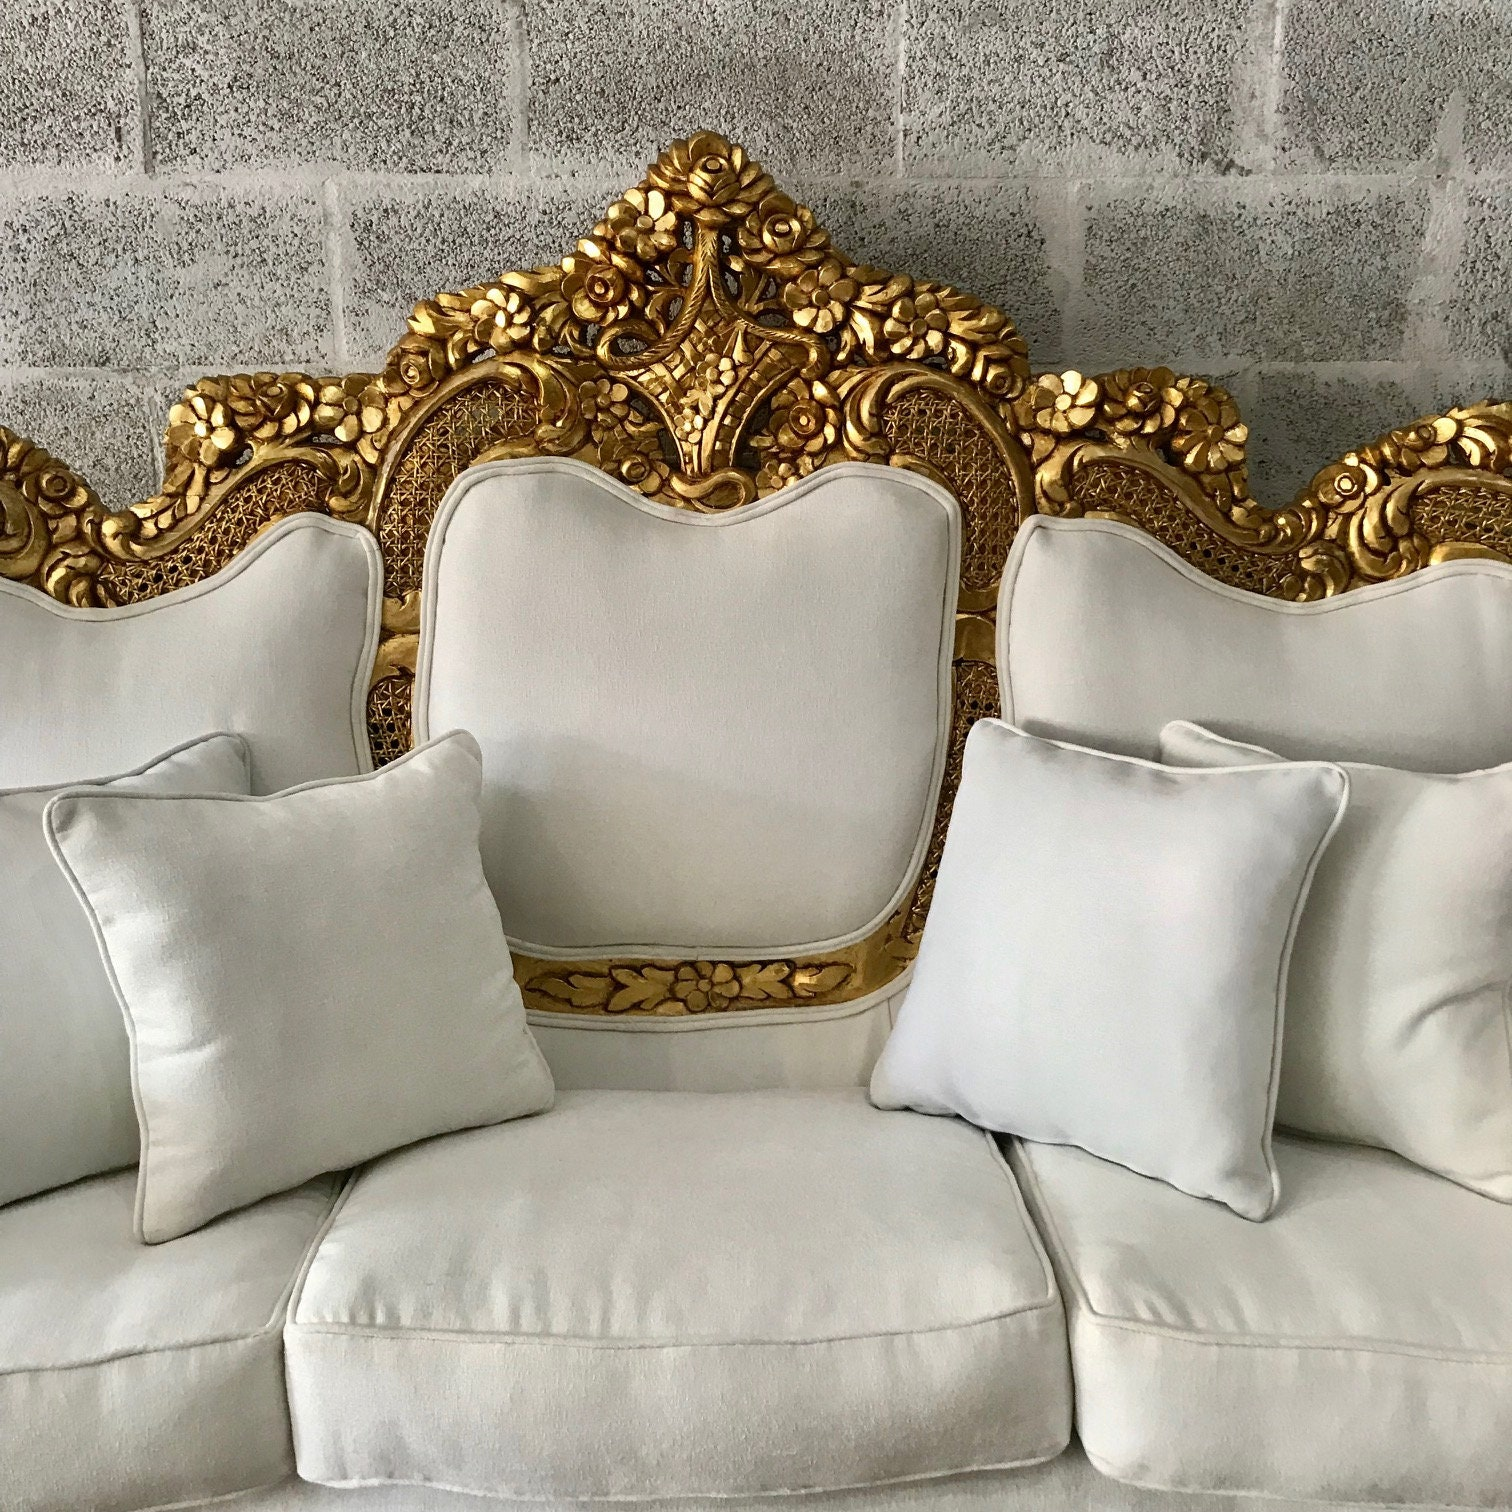 Superb Baroque Sofa Throne Furniture Rococo Sofa French Furniture Home Interior And Landscaping Dextoversignezvosmurscom